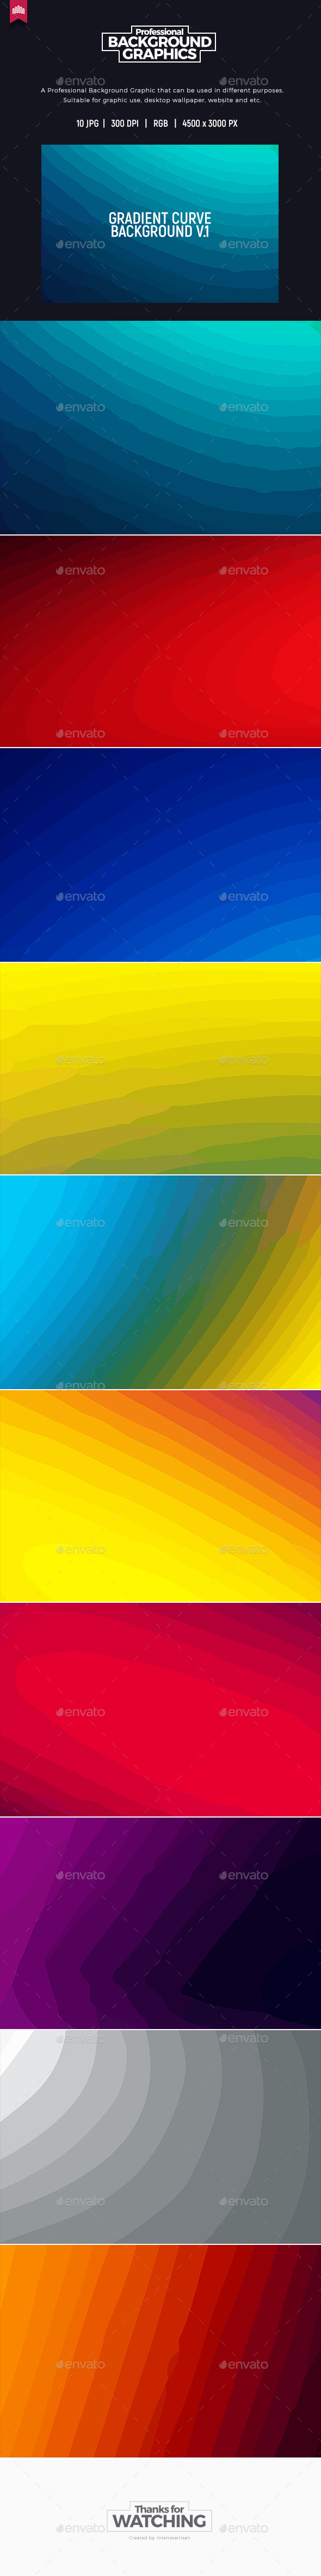 Gradient Curve V.1 - Background - Abstract Backgrounds